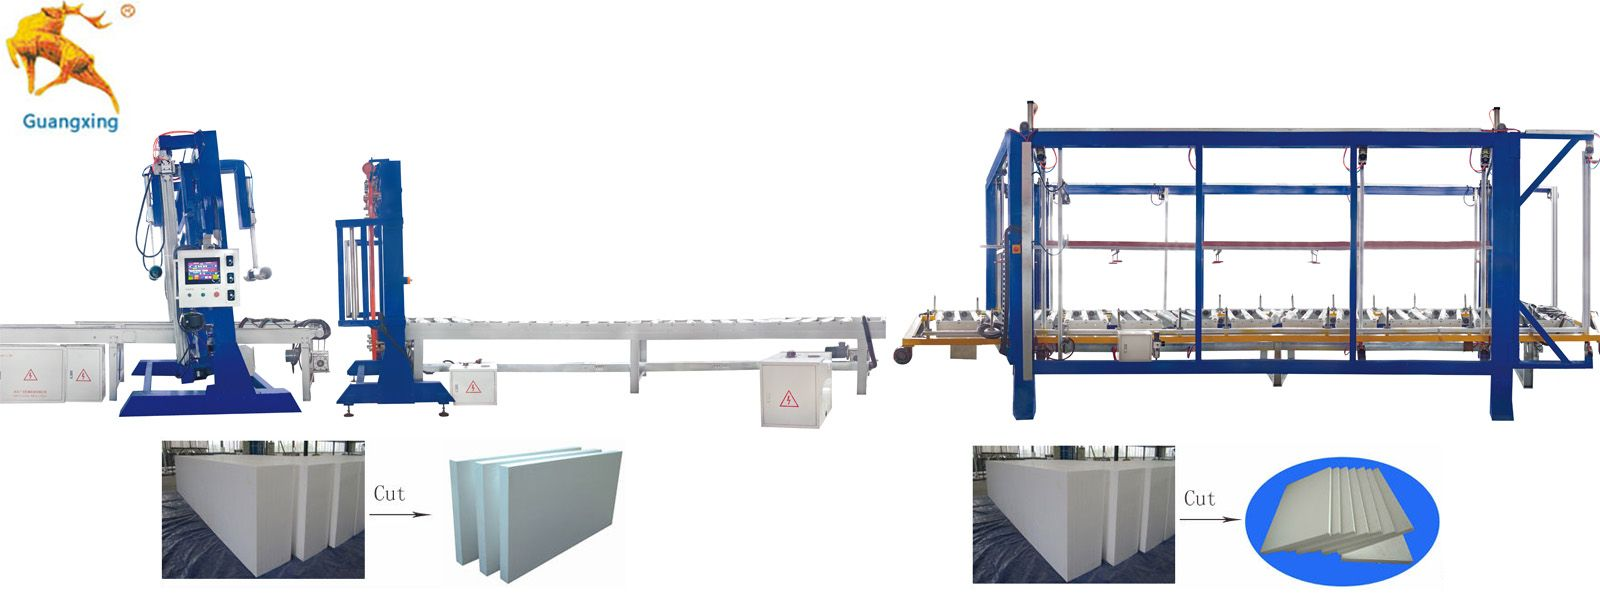 Automatic-EPS-Block Cutting Line